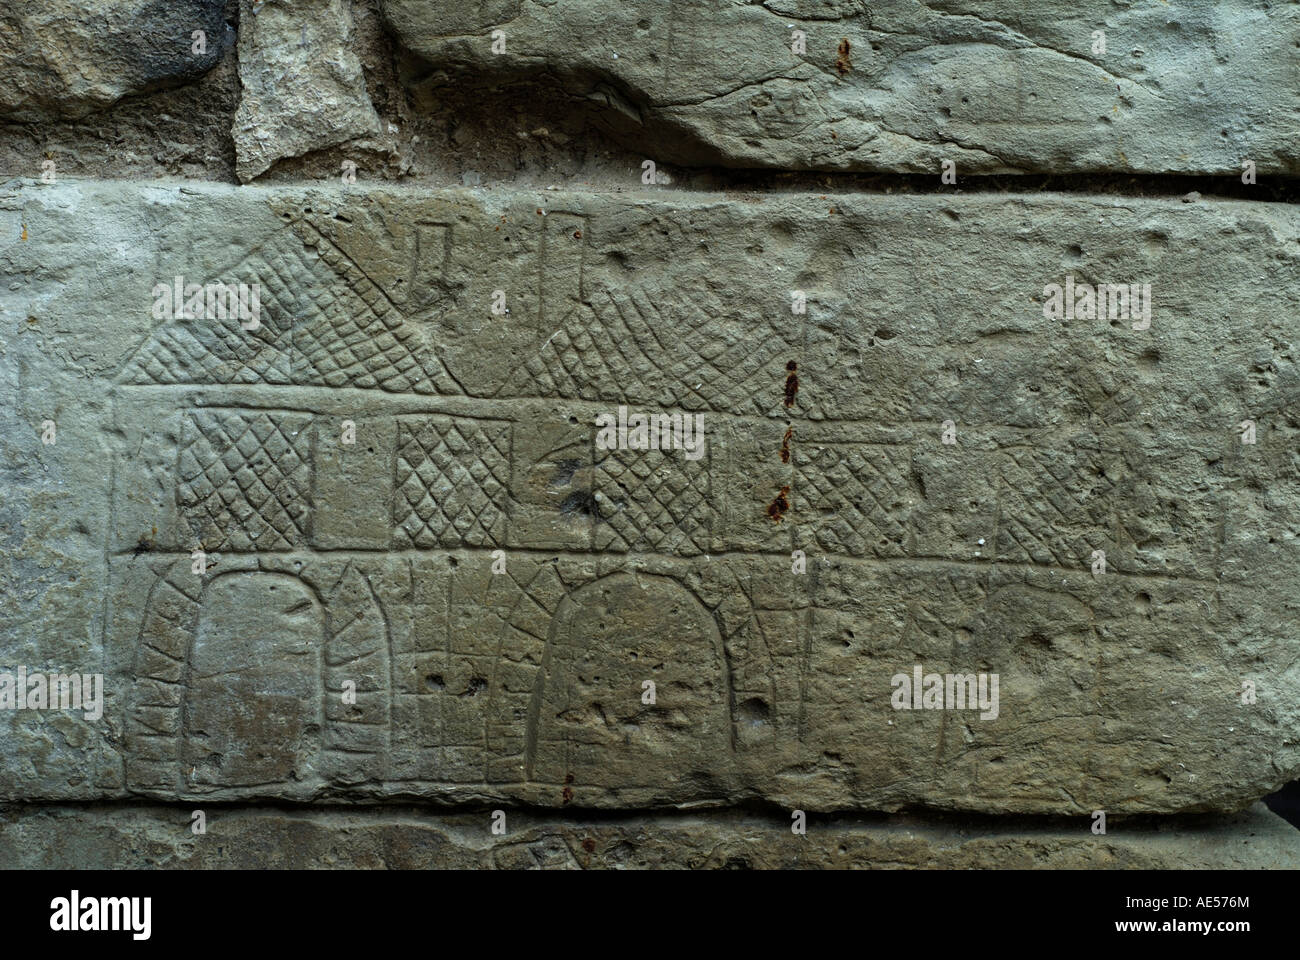 Prisoner's graffiti scratched on wall of Poterne, Preuilly-sur-Claise (37290), sud Touraine, France. - Stock Image